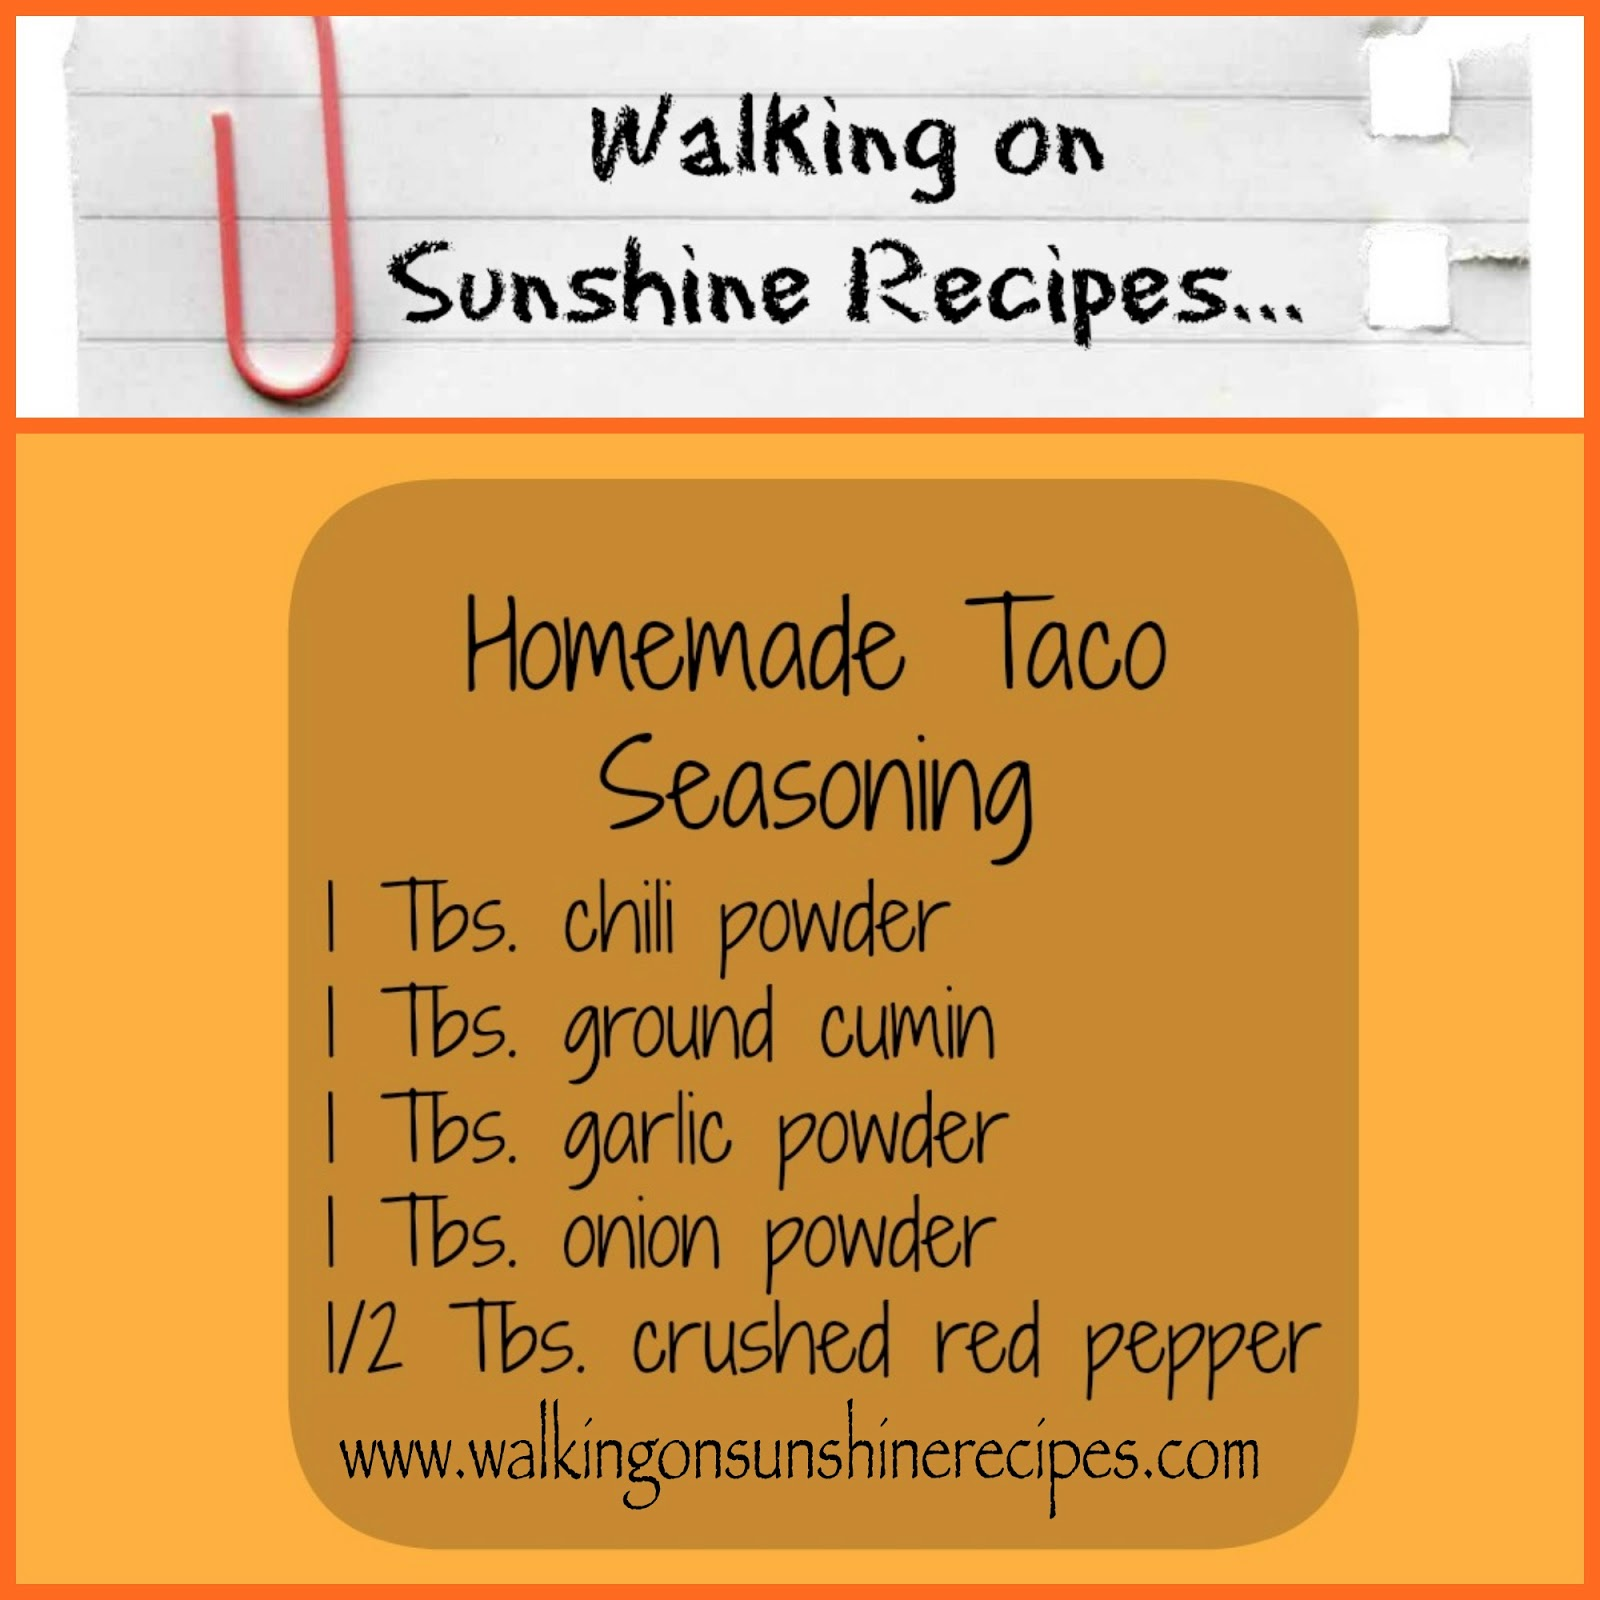 Homemade Taco Seasoning... | Walking on Sunshine